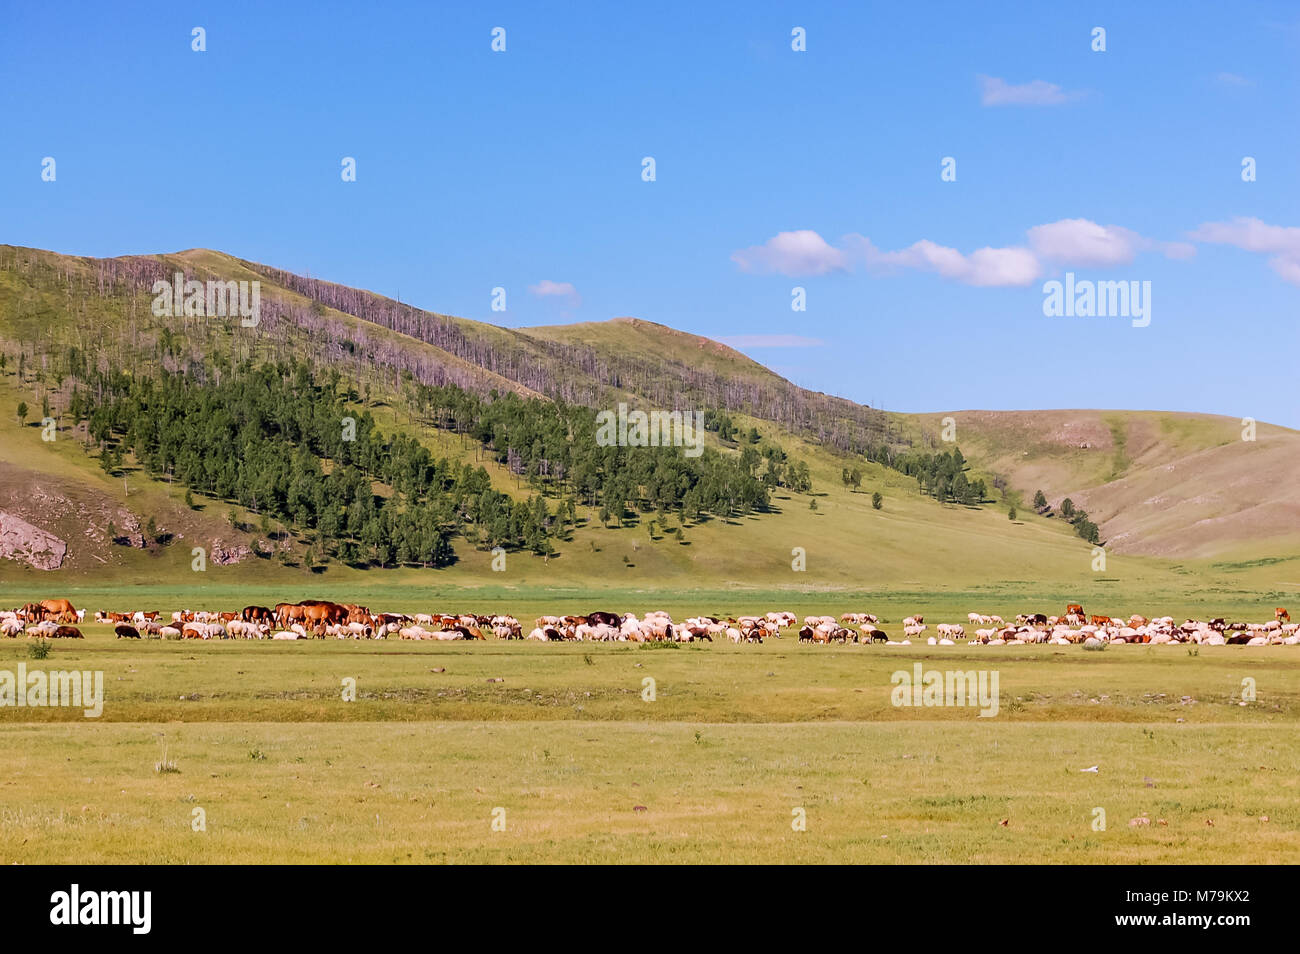 Herds of horses, sheep & goats graze on grasslands of central Mongolian steppe - Stock Image